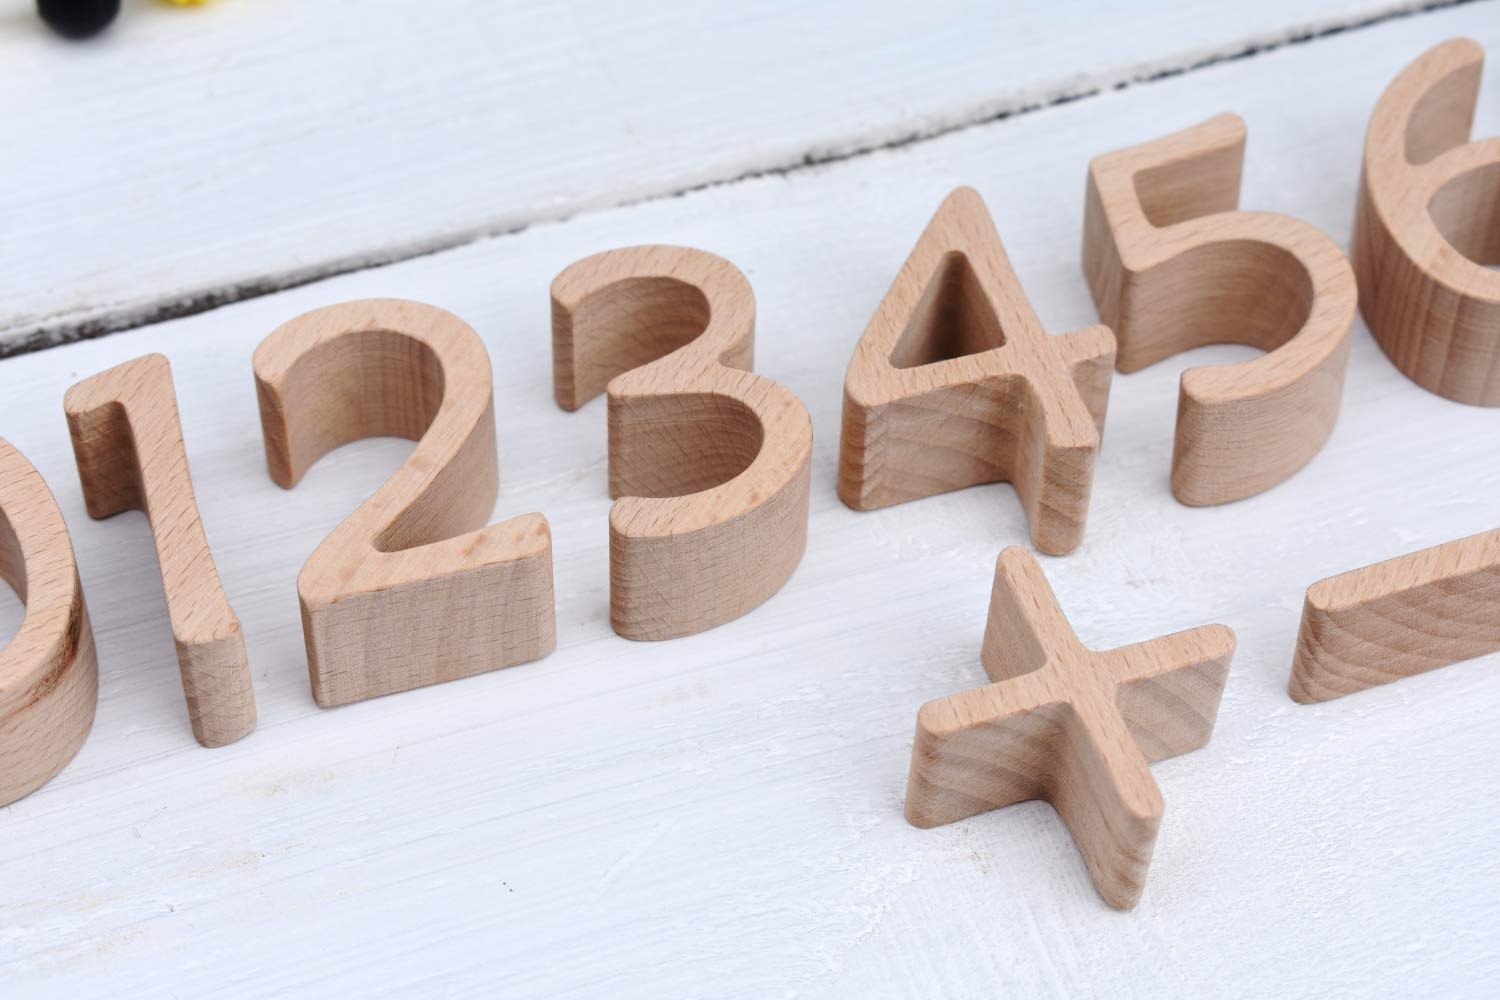 Wood Numbers For Nursery Wooden Numerals For Children Figures Preschool Development Toys Motor Games Montessori Education